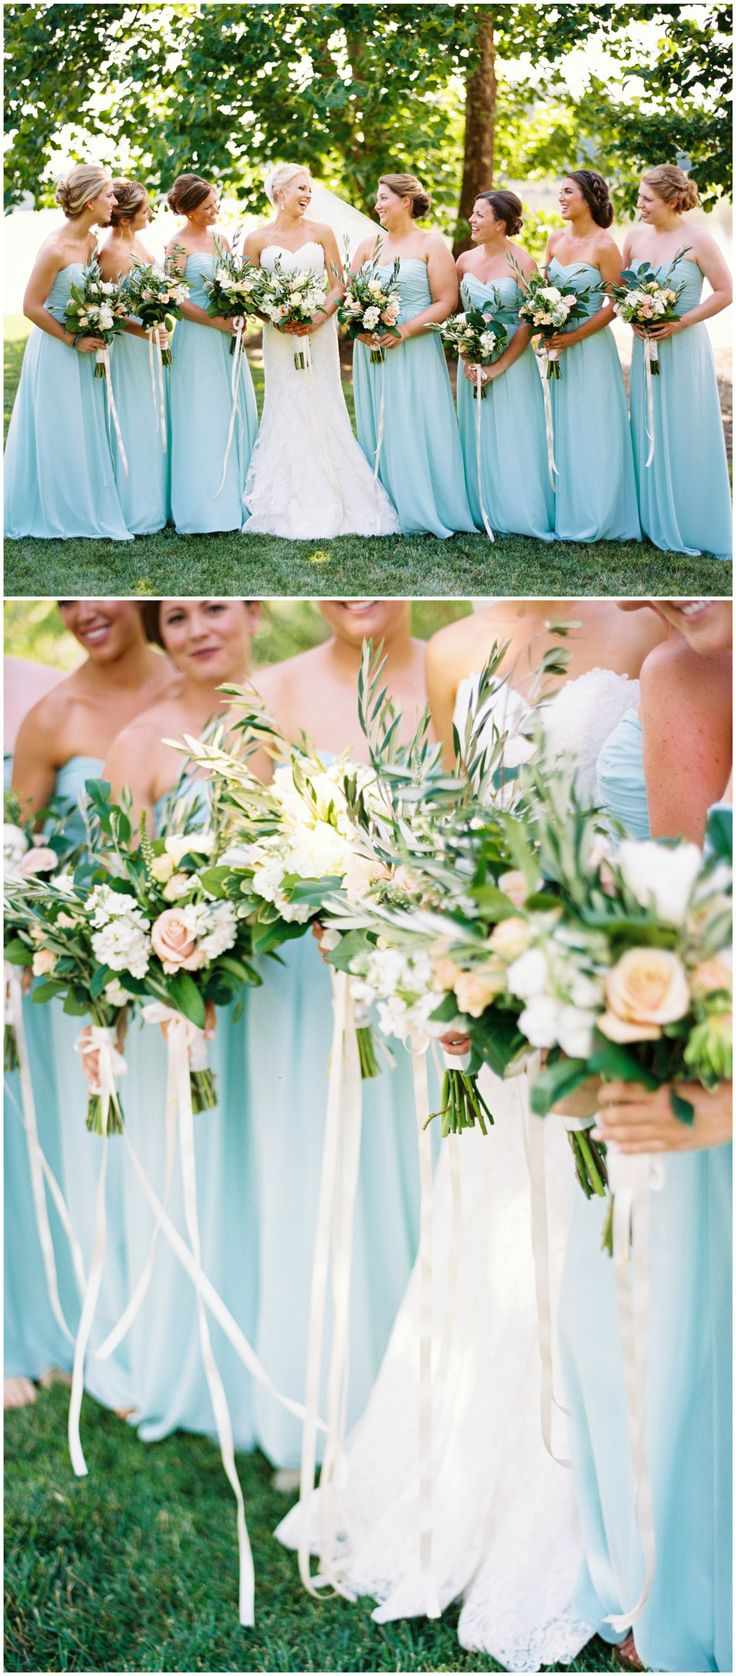 Aqua bridal party, long strapless bridesmaid dresses, peach and white floral wedding bouquets, Southern wedding // JoPhoto